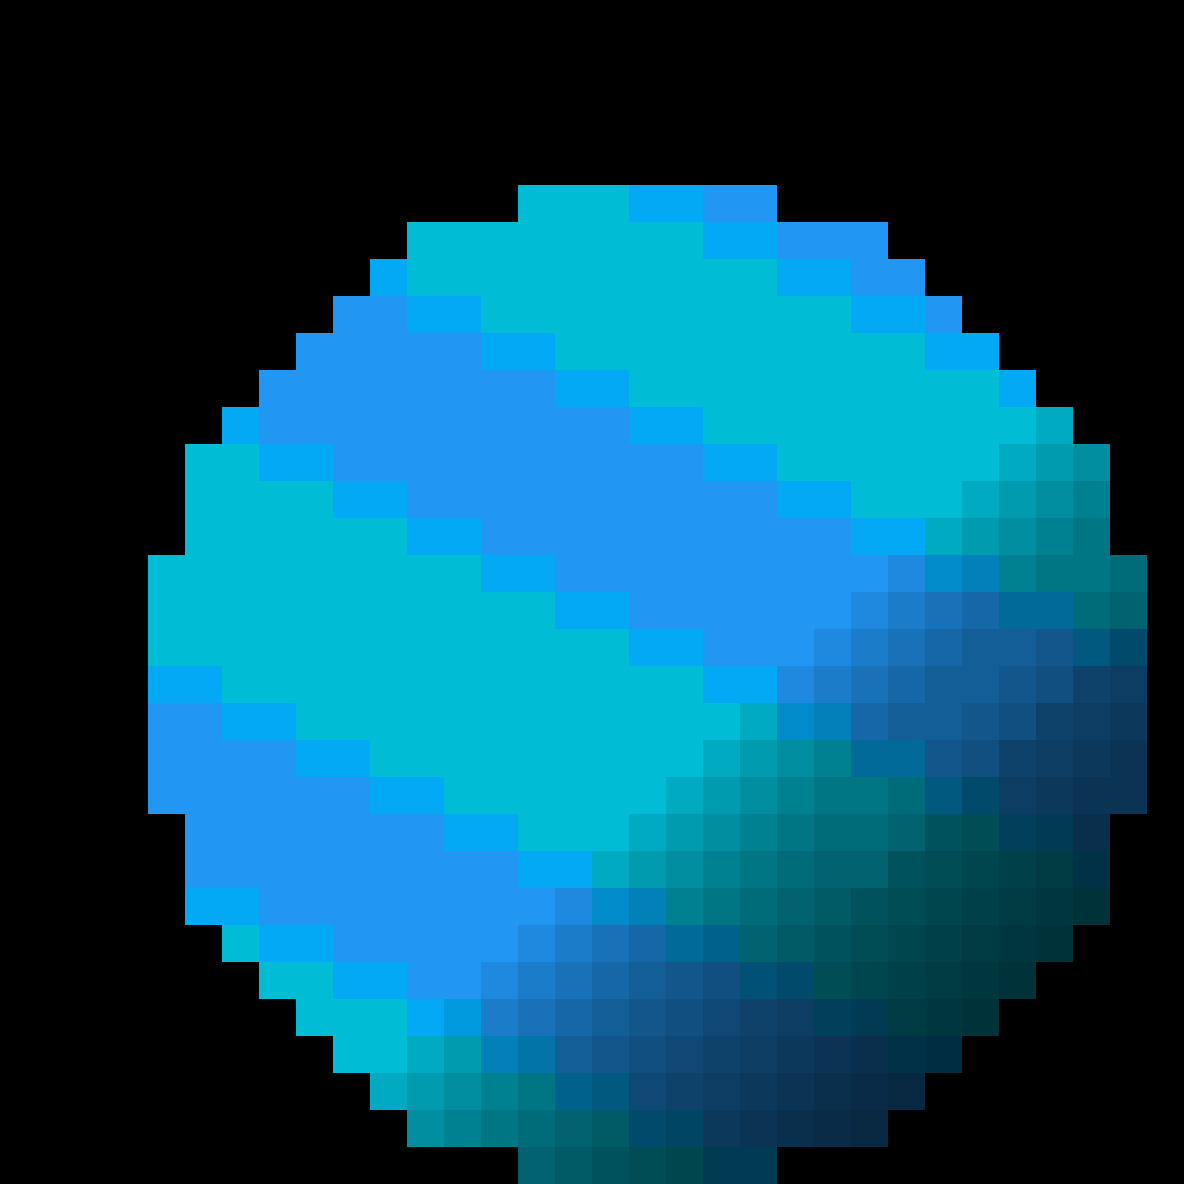 Quickdraw (Planet) by DurinDeathless